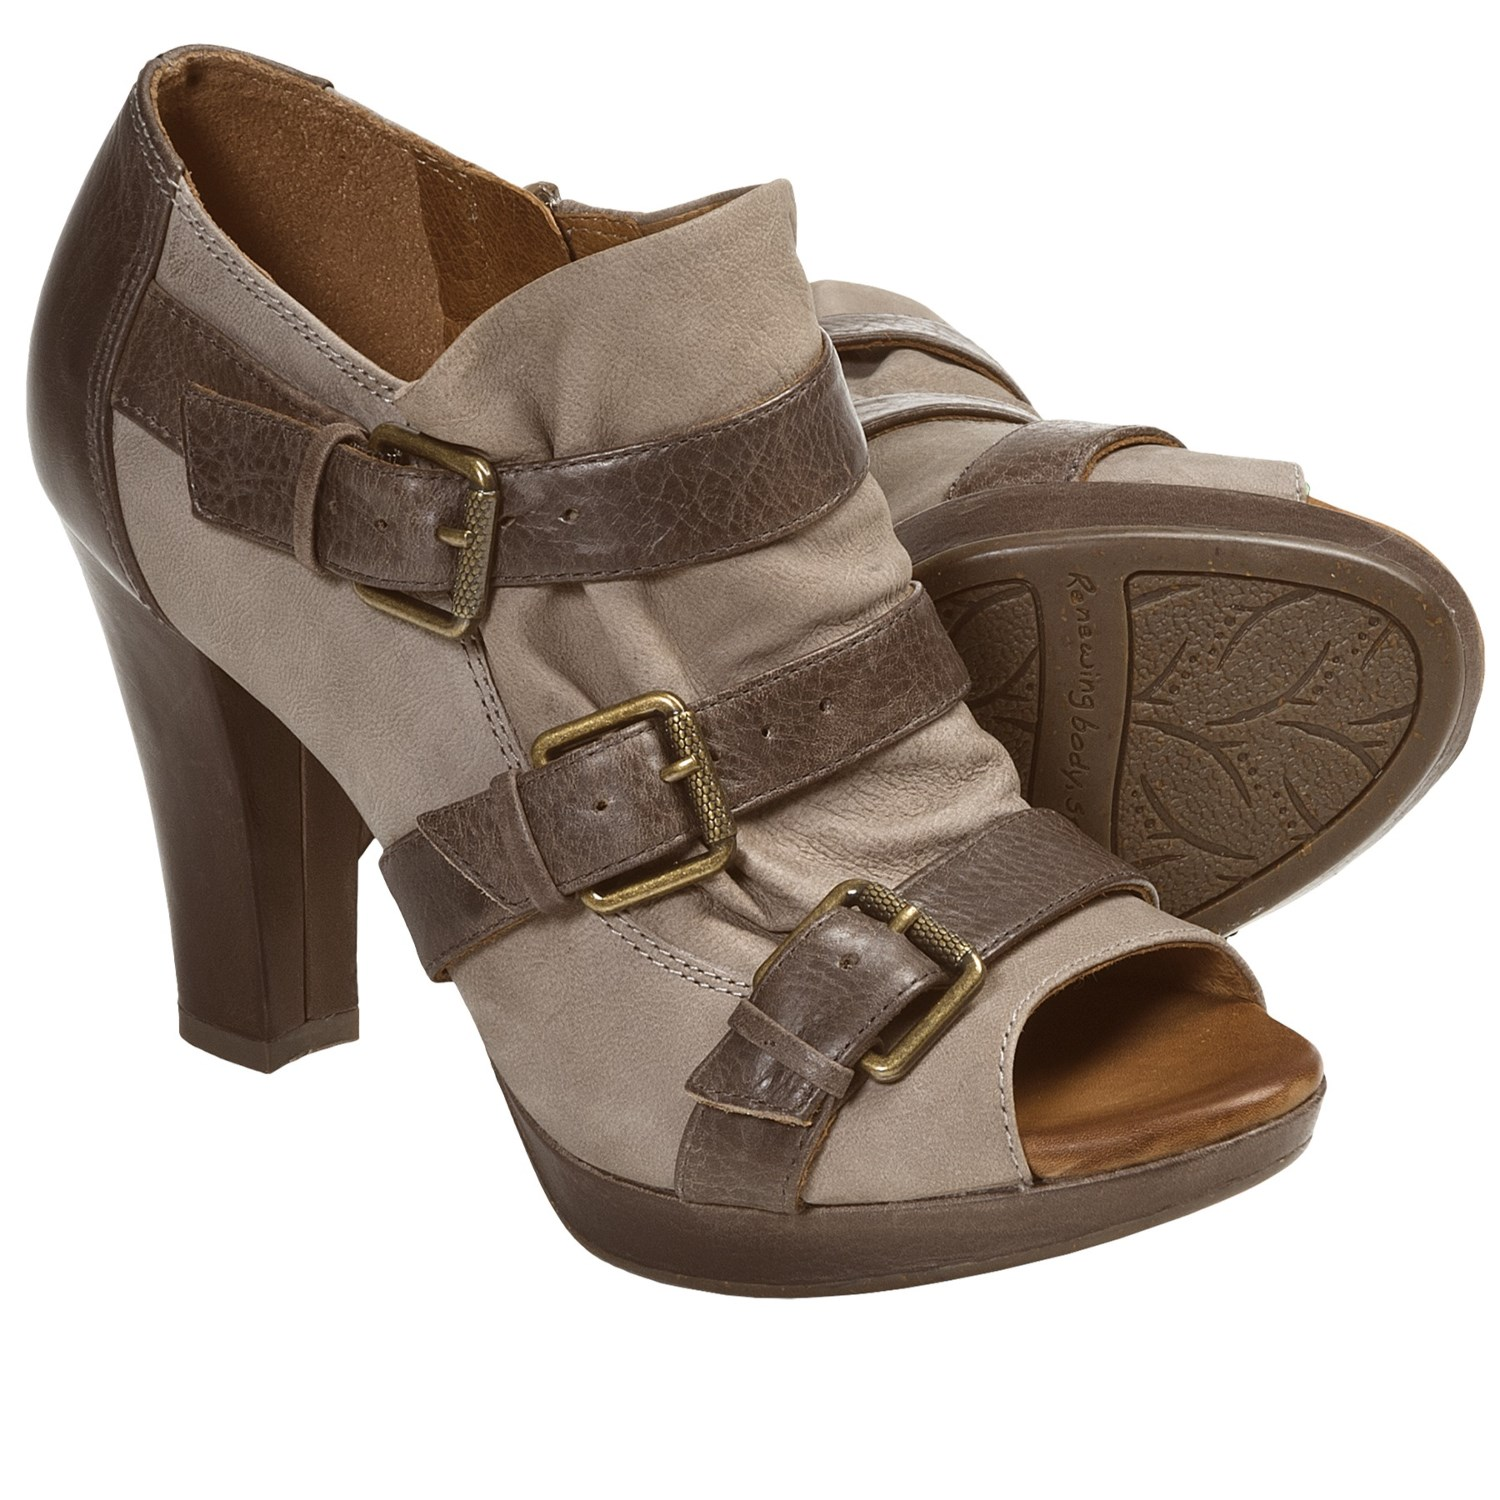 Naya Kindred Heel Shoes (For Women) in Taupe/Brown